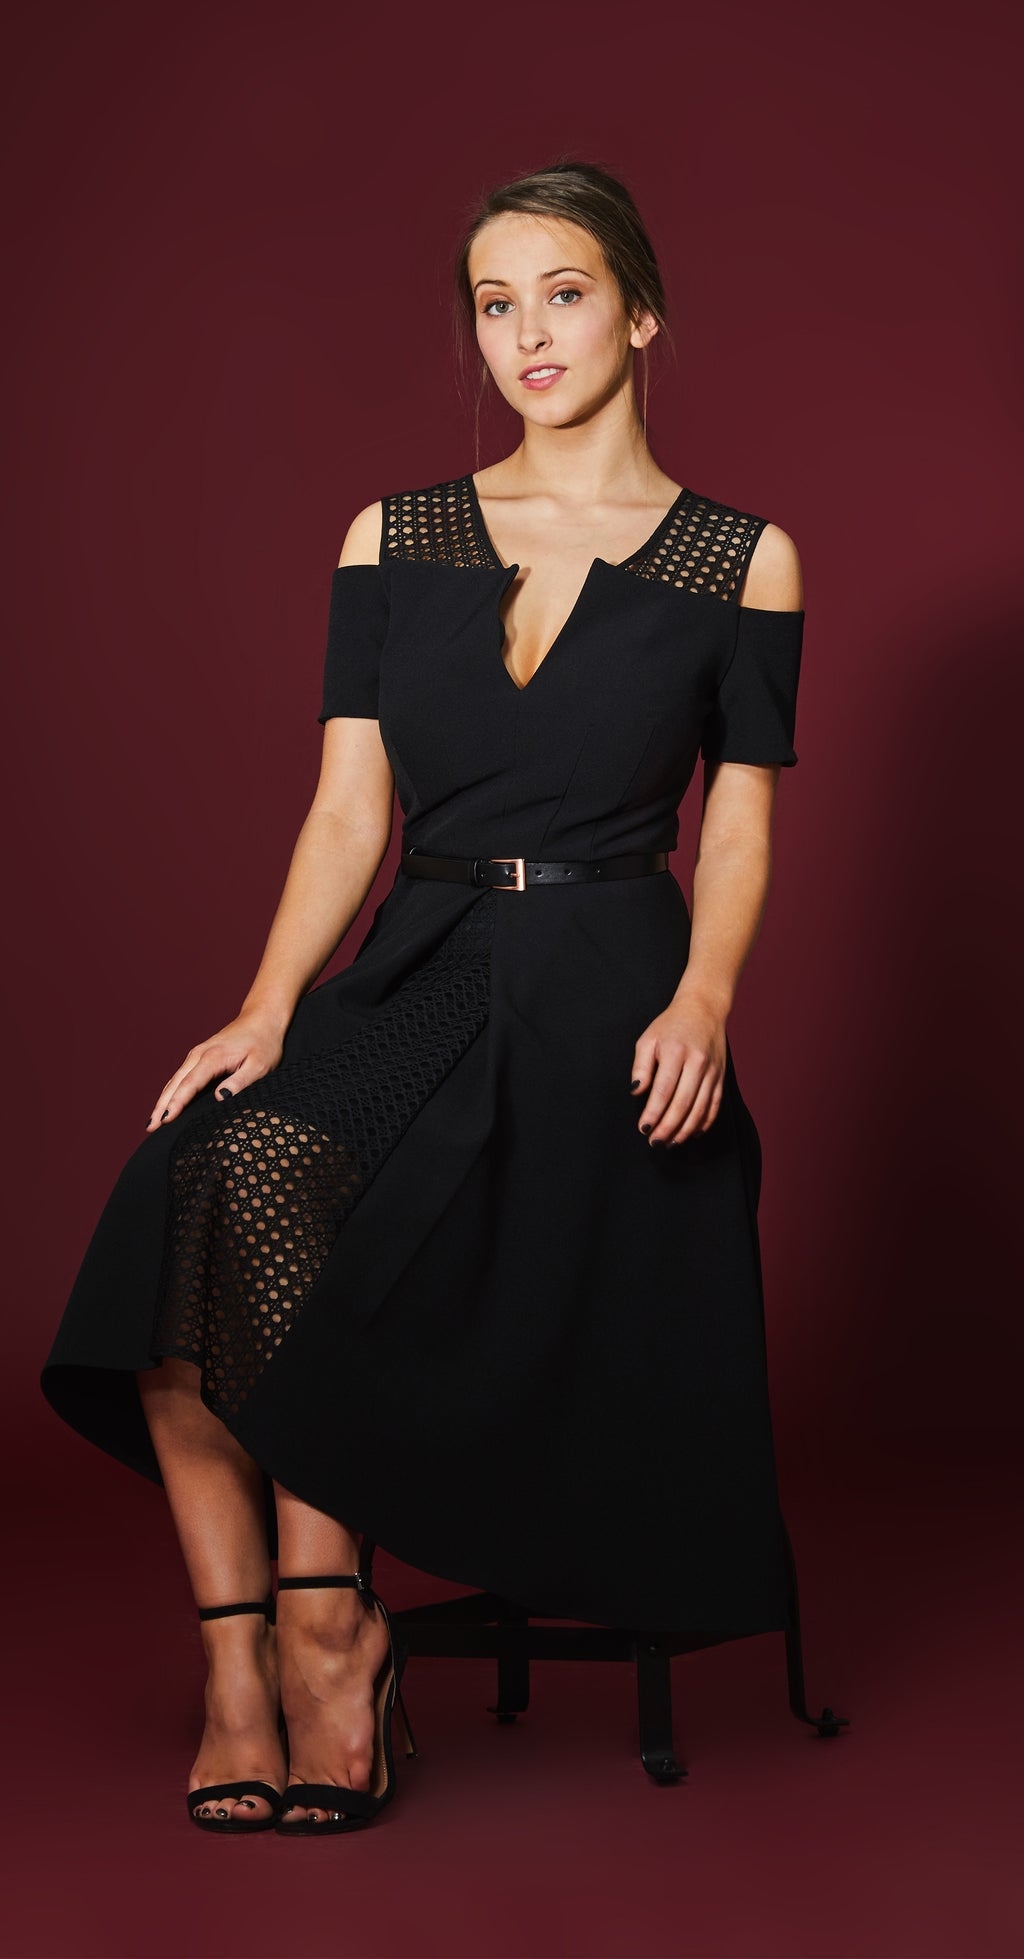 Iviron Dress DRC223 Black/Lace Contrast With Belt